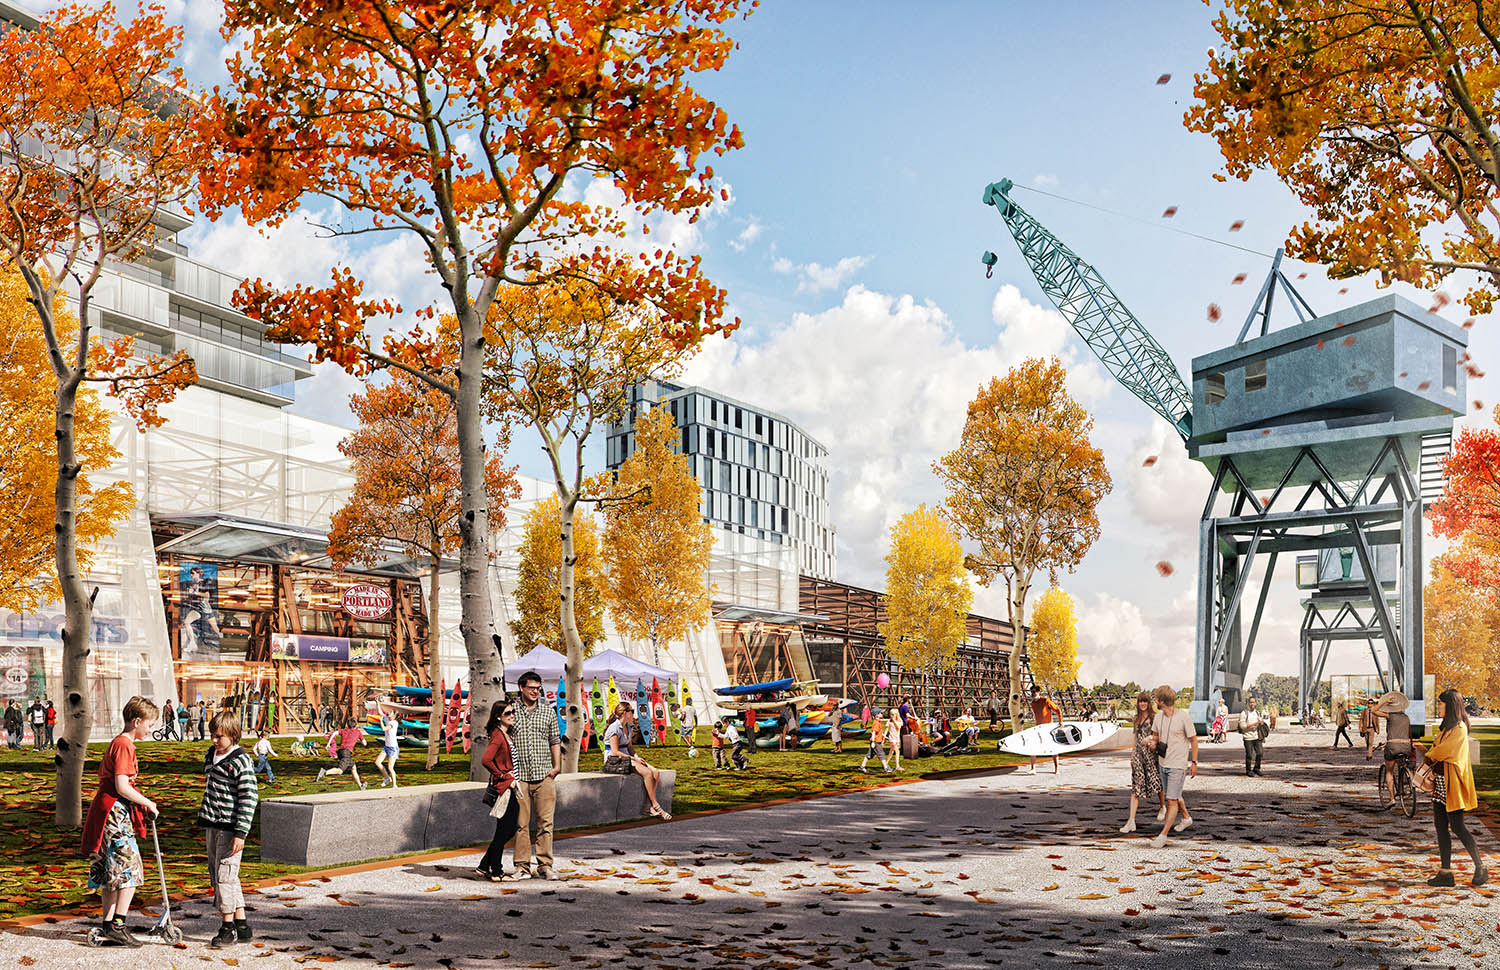 The cultural park integrates cranes and infrastructure of the previous industrial uses as part of the new public realm.